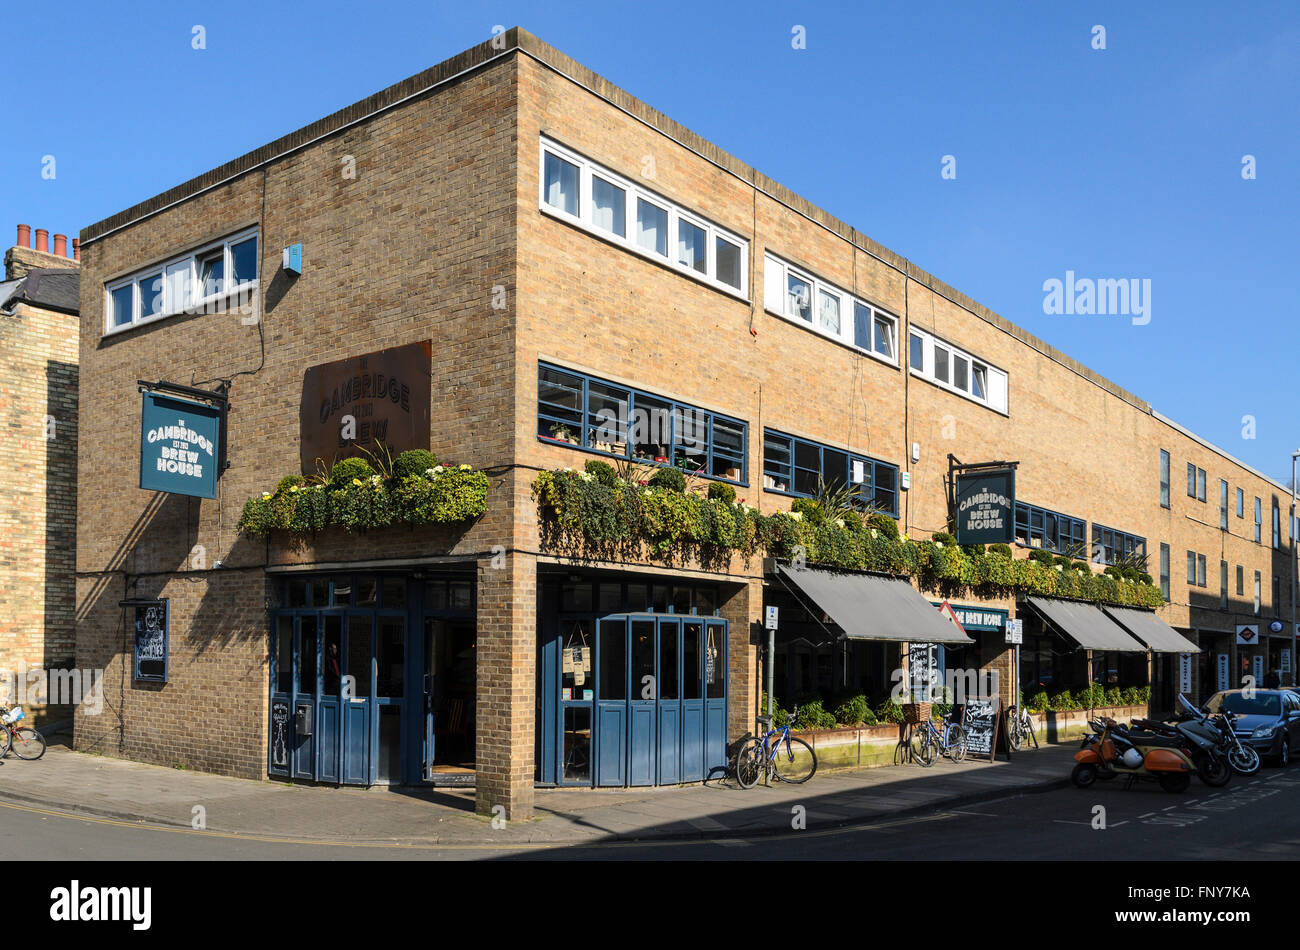 The Cambridge Brew House, Cambridge, England, UK. - Stock Image